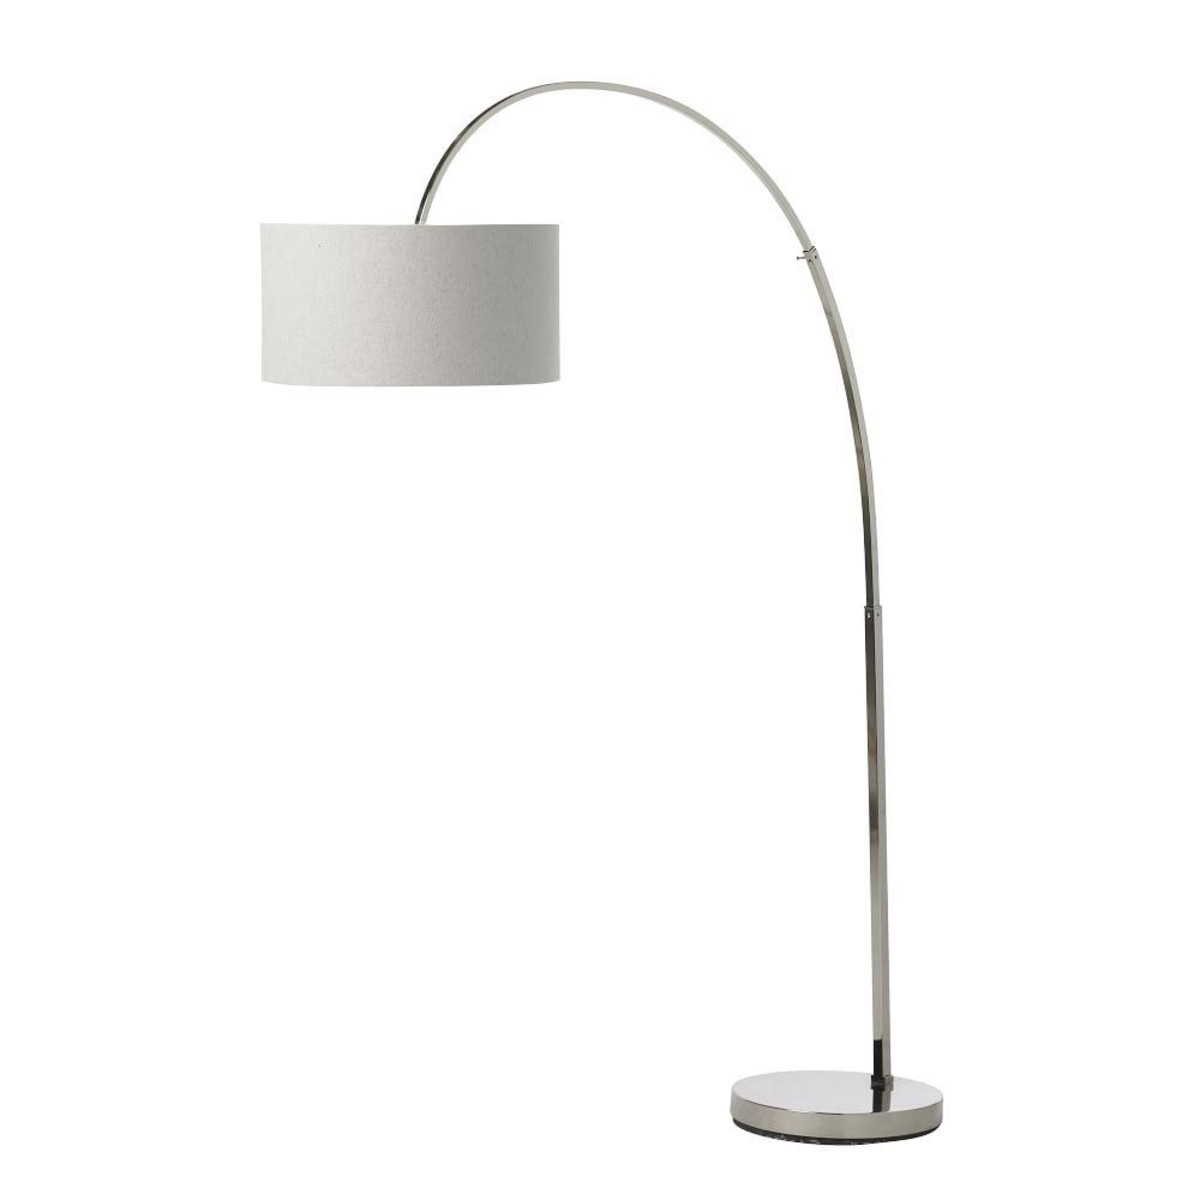 overarching floor lamp polished nickel white west elm media accent spotlight table adjustable height end extendable dimmable bedroom lamps with usb ports astoria sofa light pine